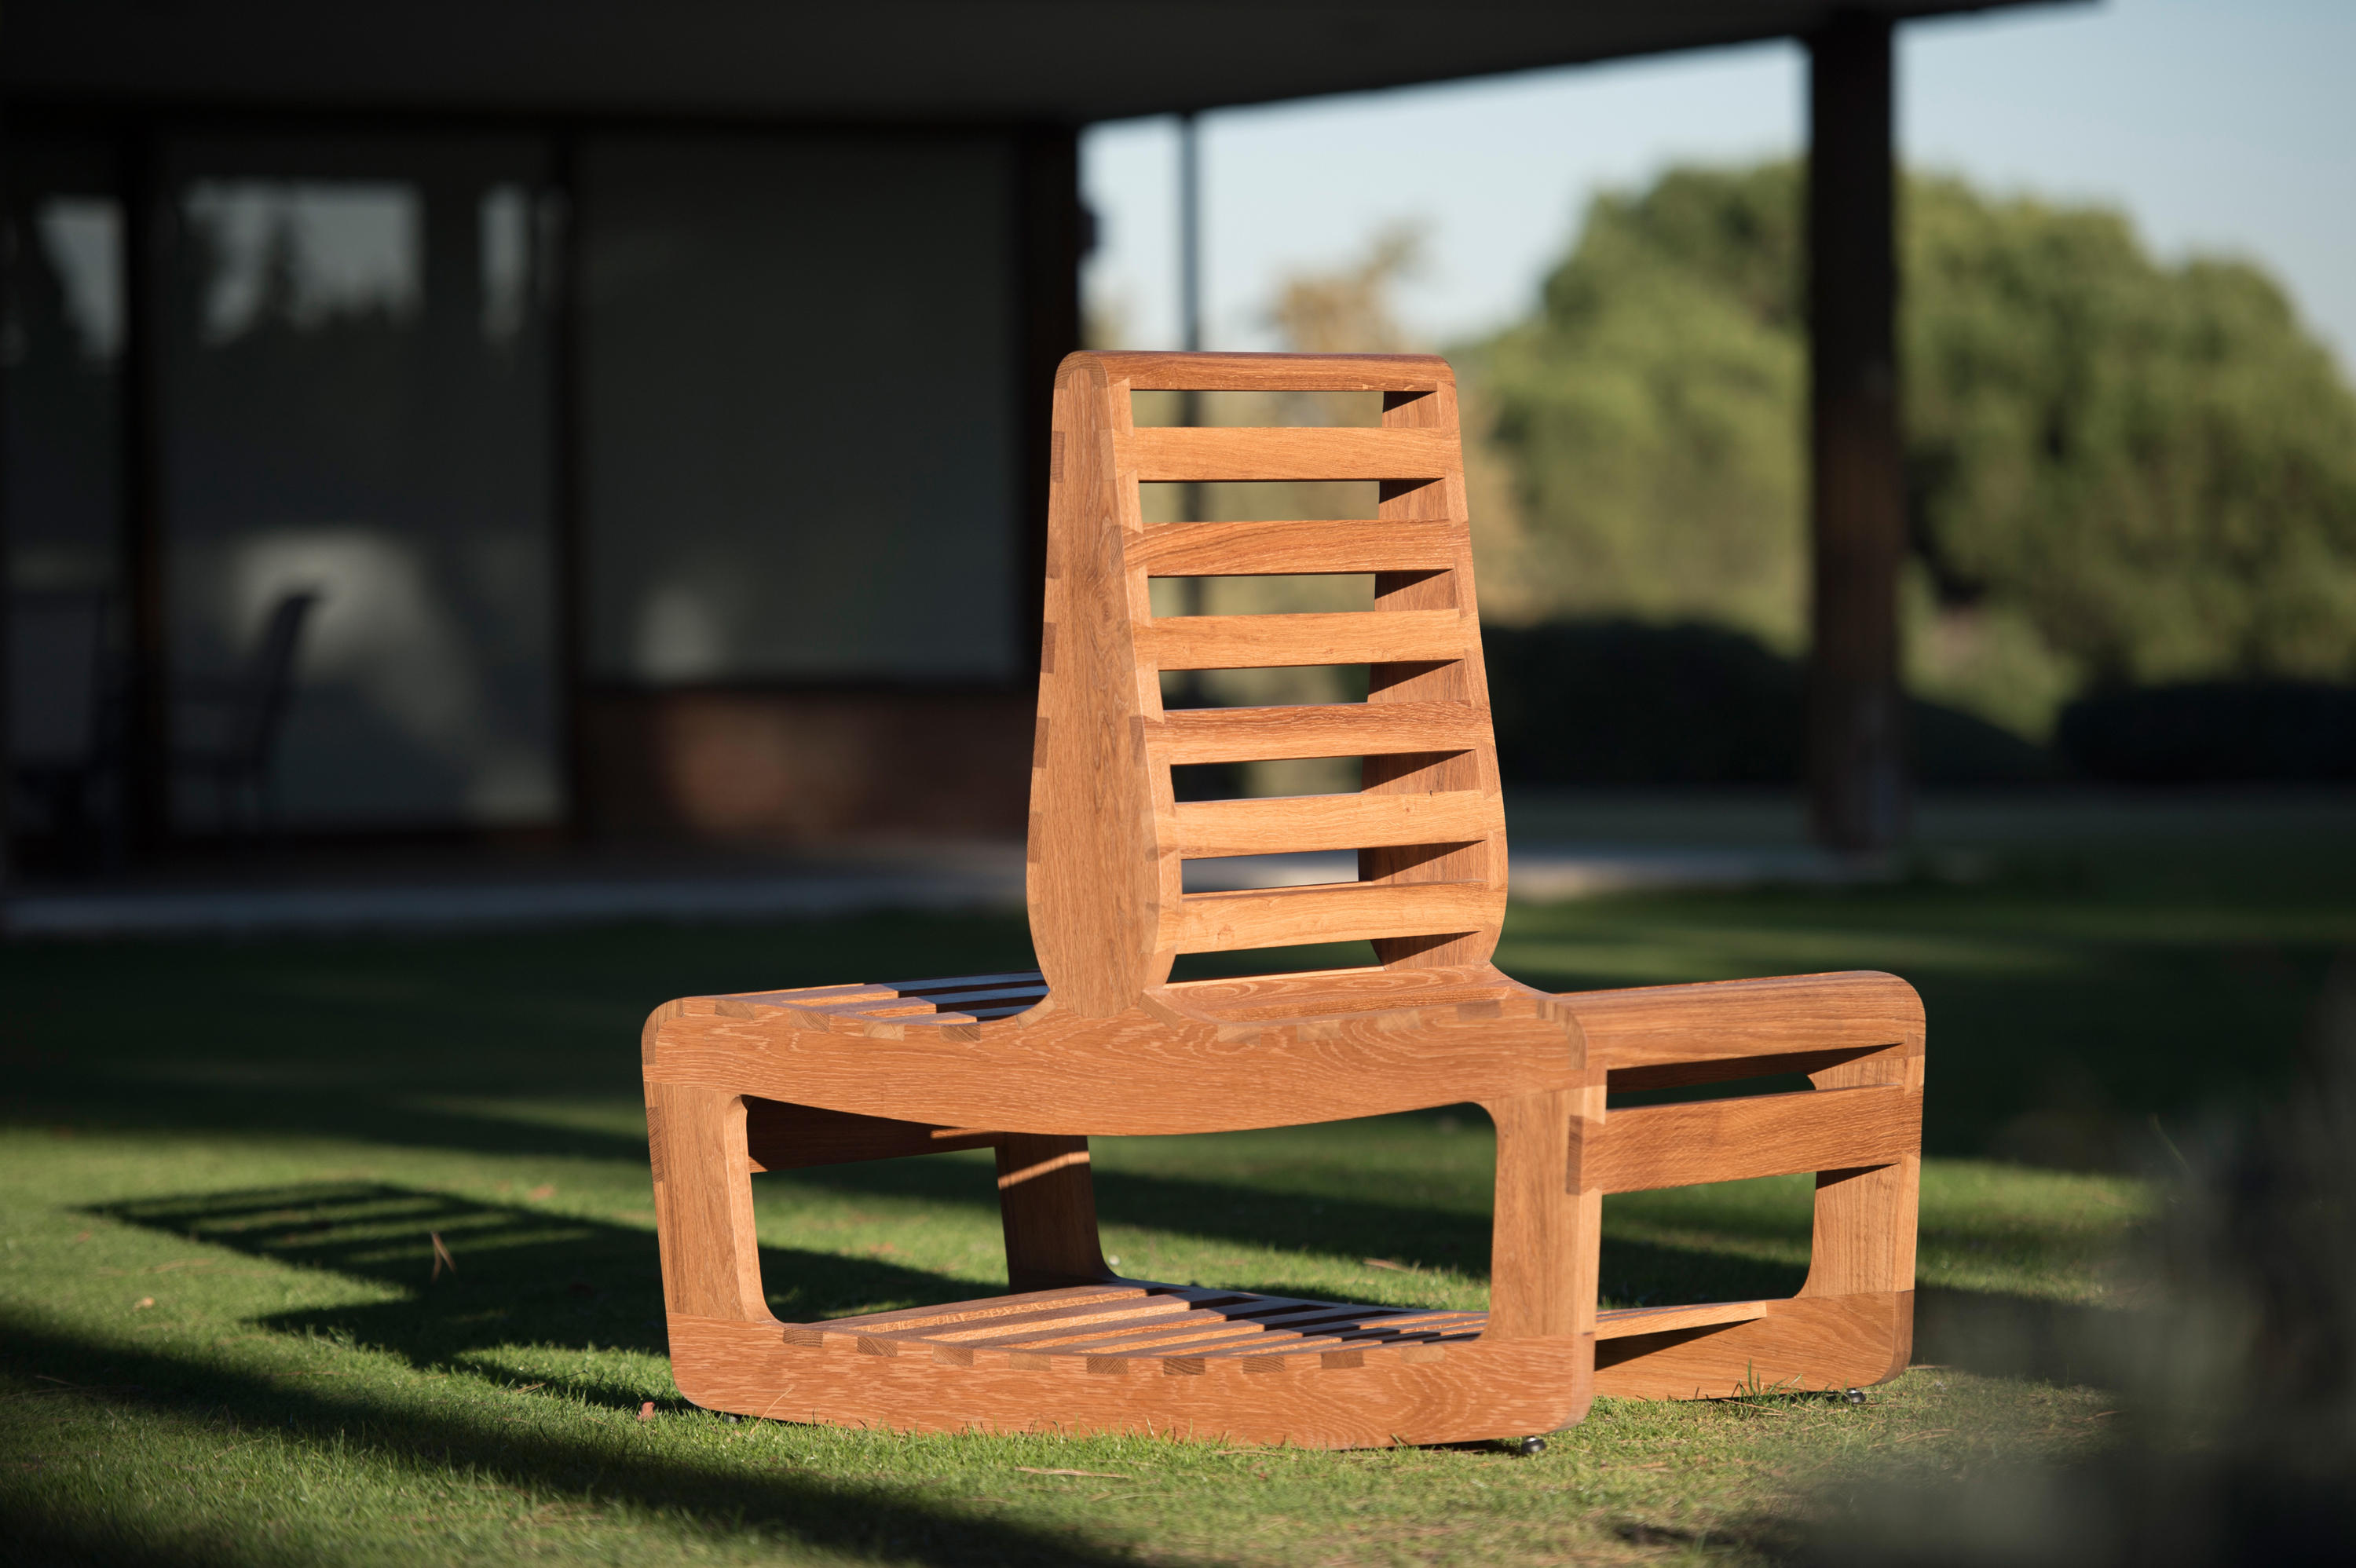 Happy Chair By QoWood